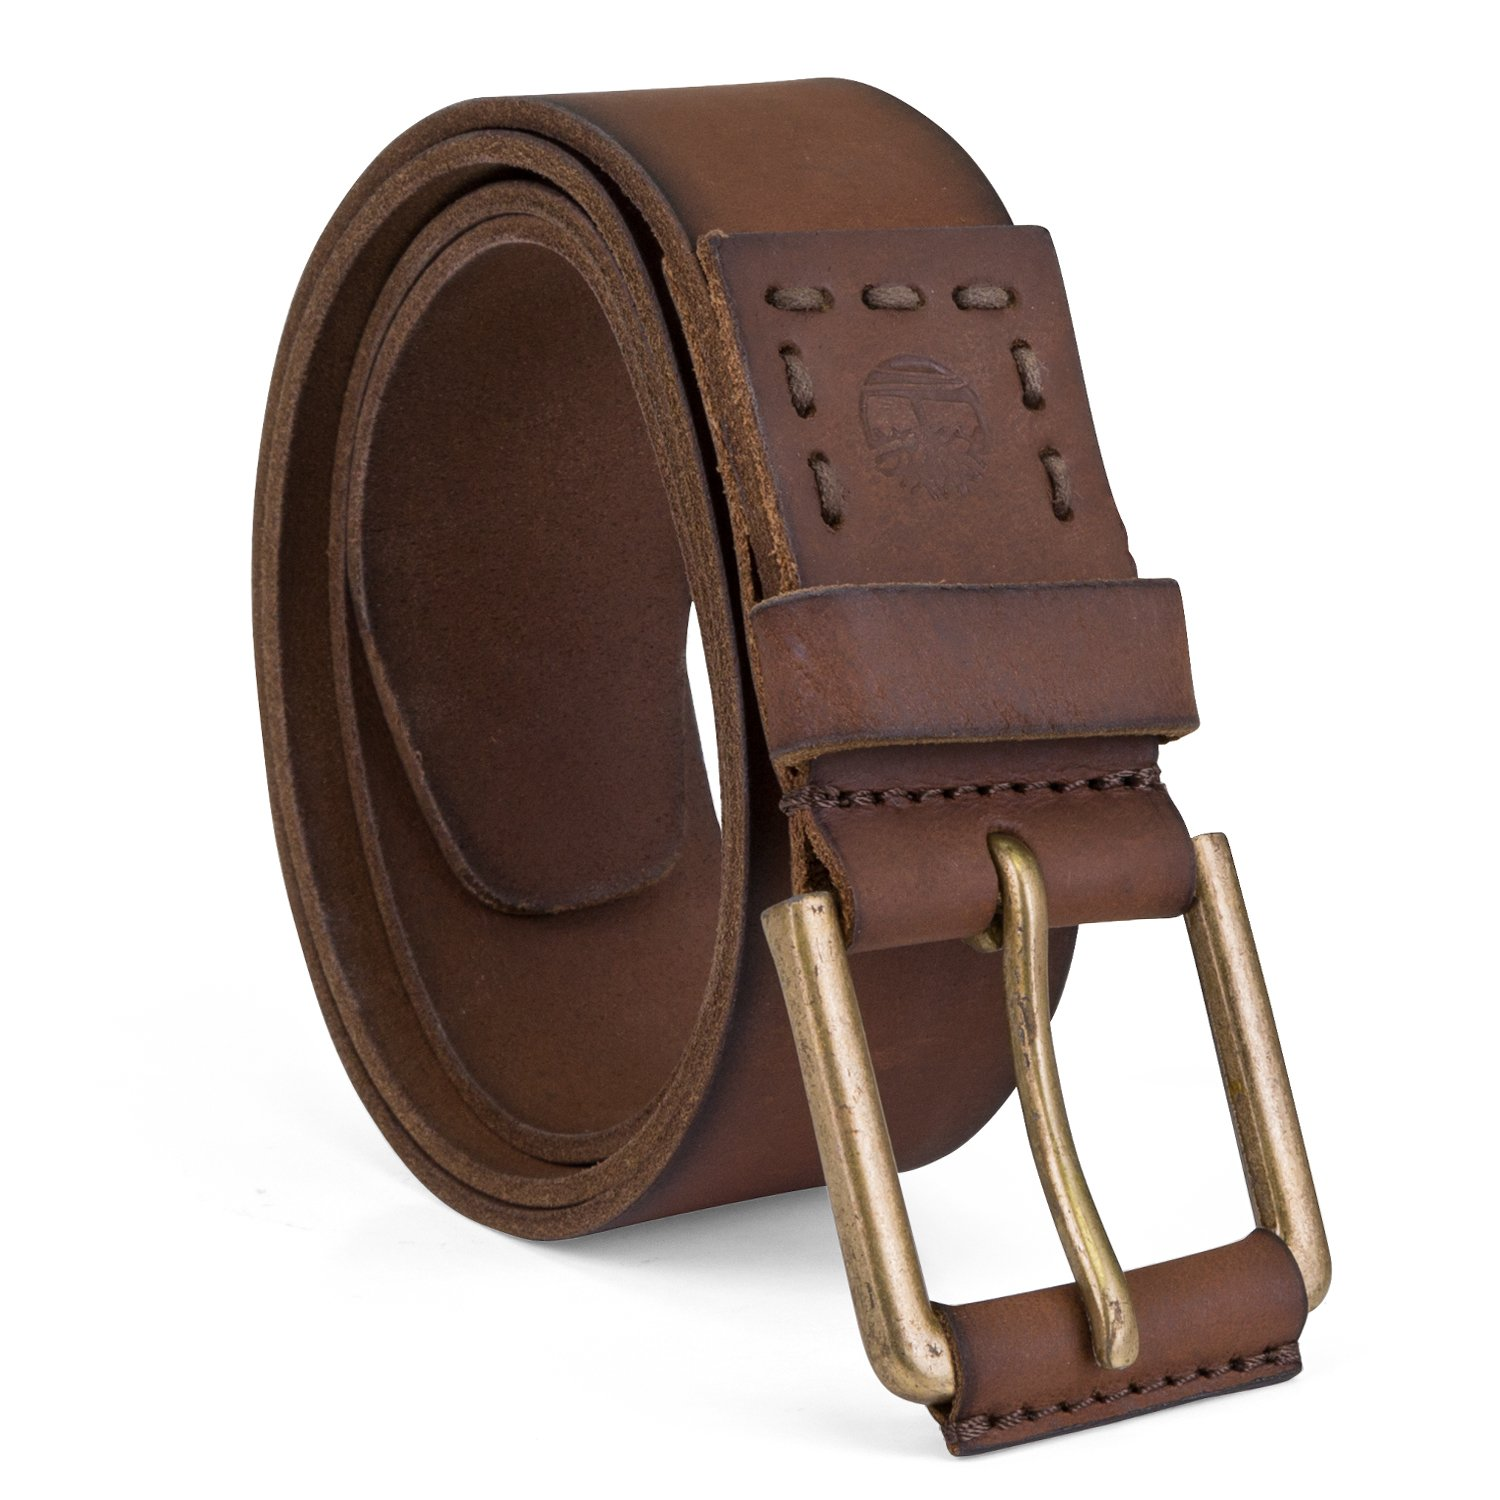 Timberland Men's Casual Leather Belt Timberland Accessories B75392